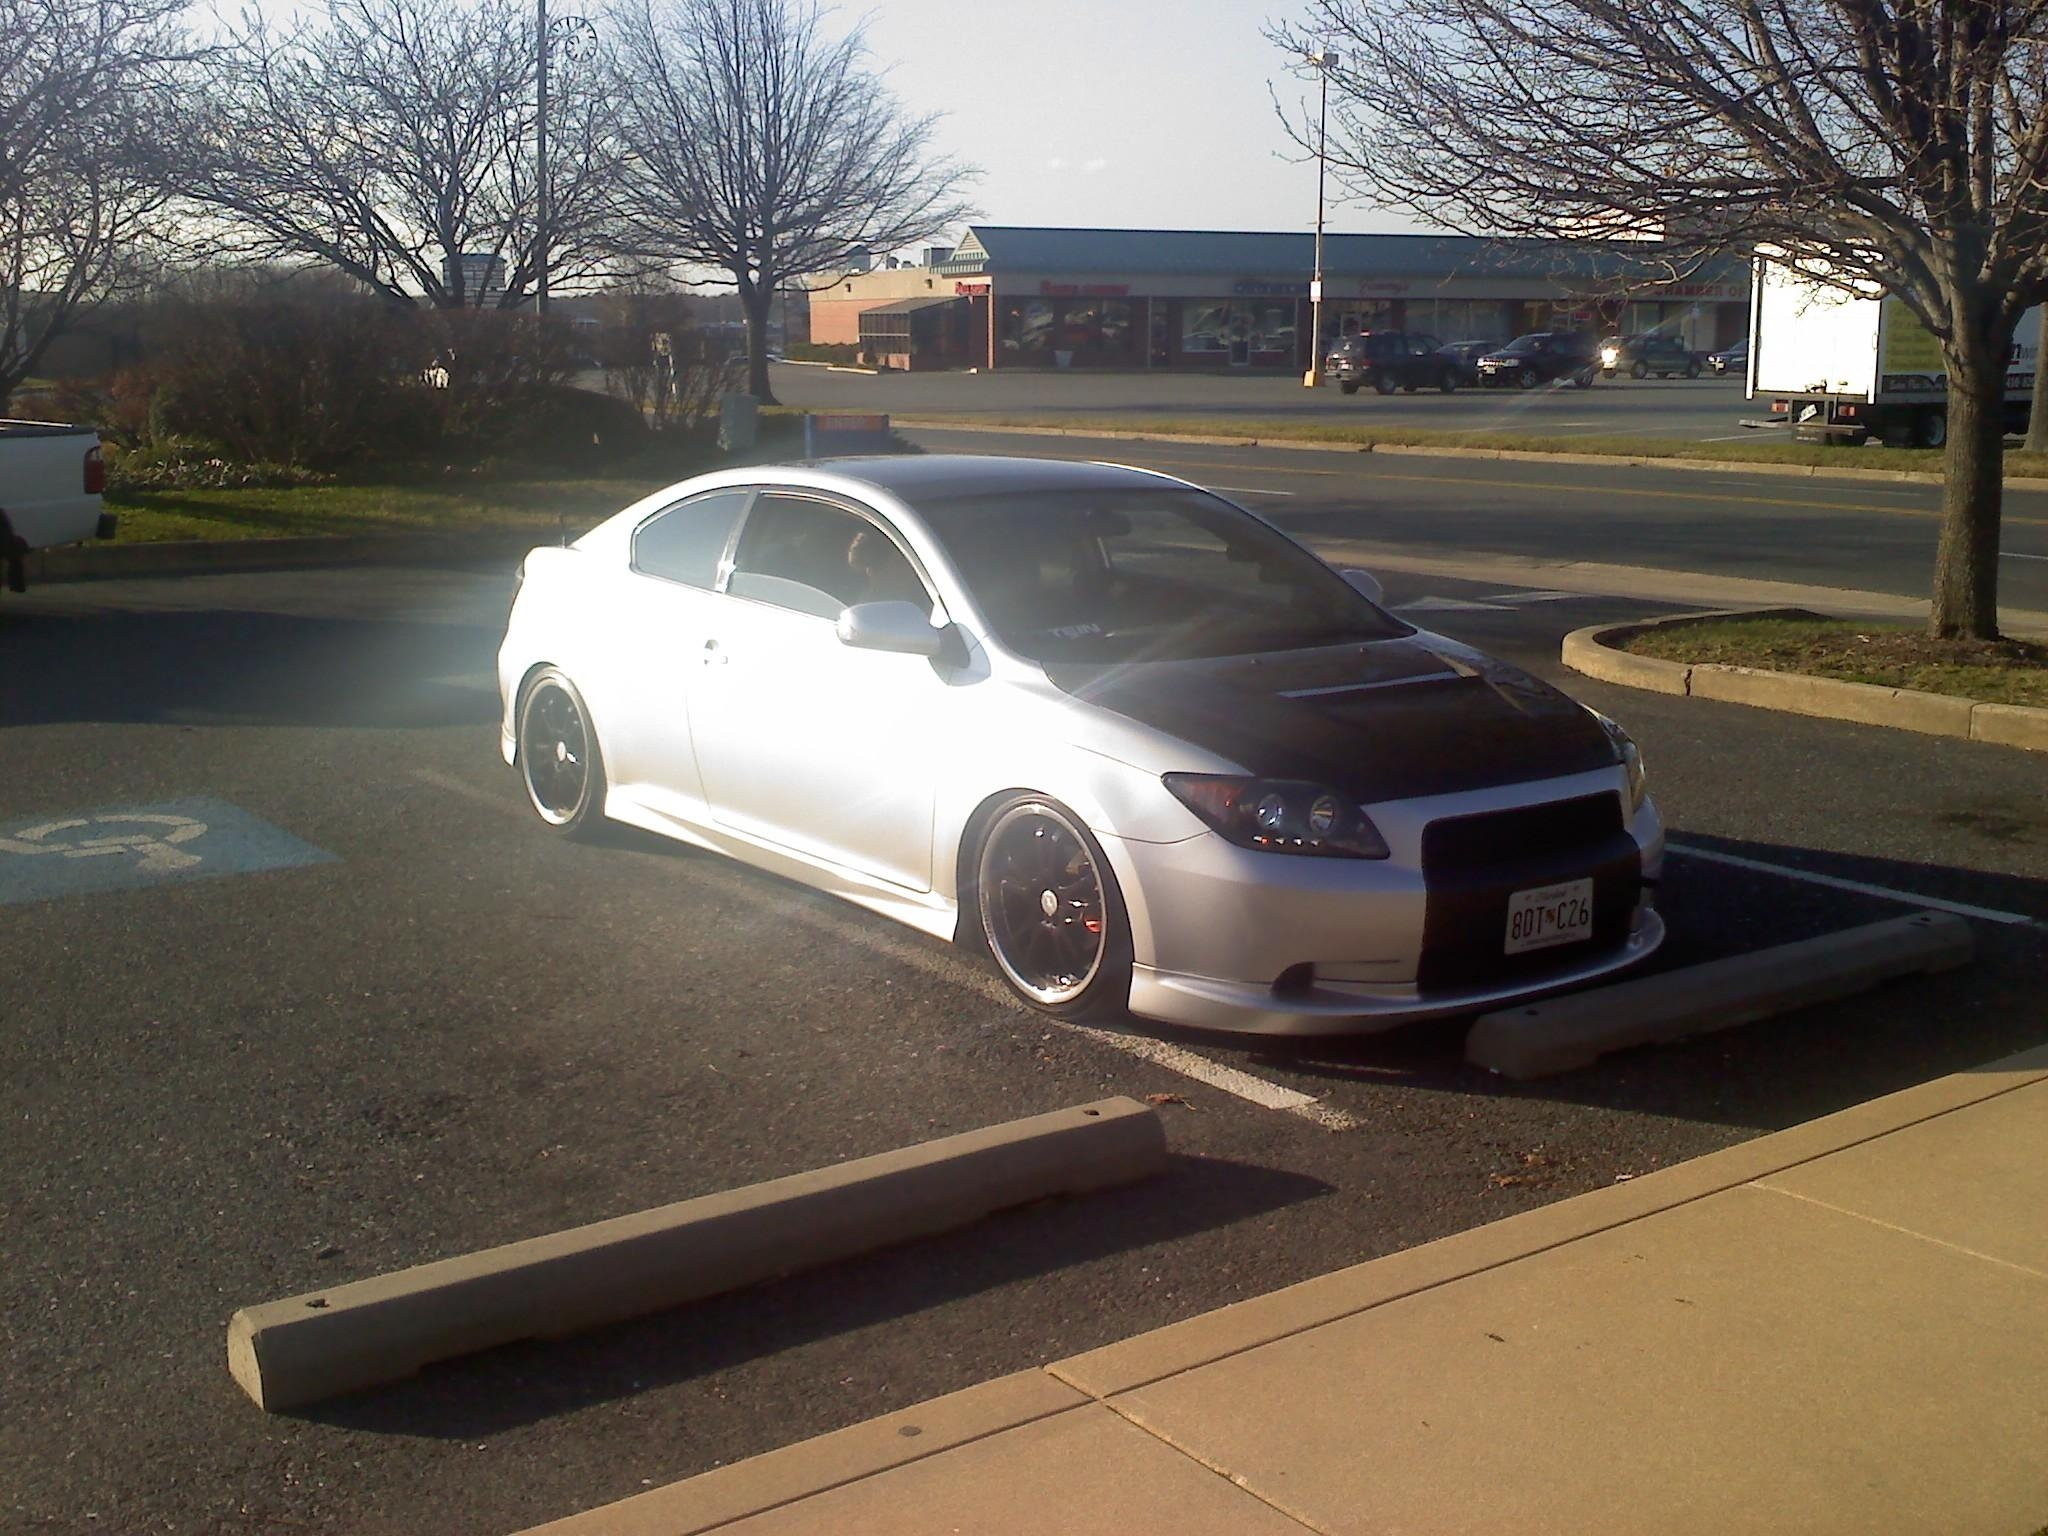 f369874's 2007 Scion tC